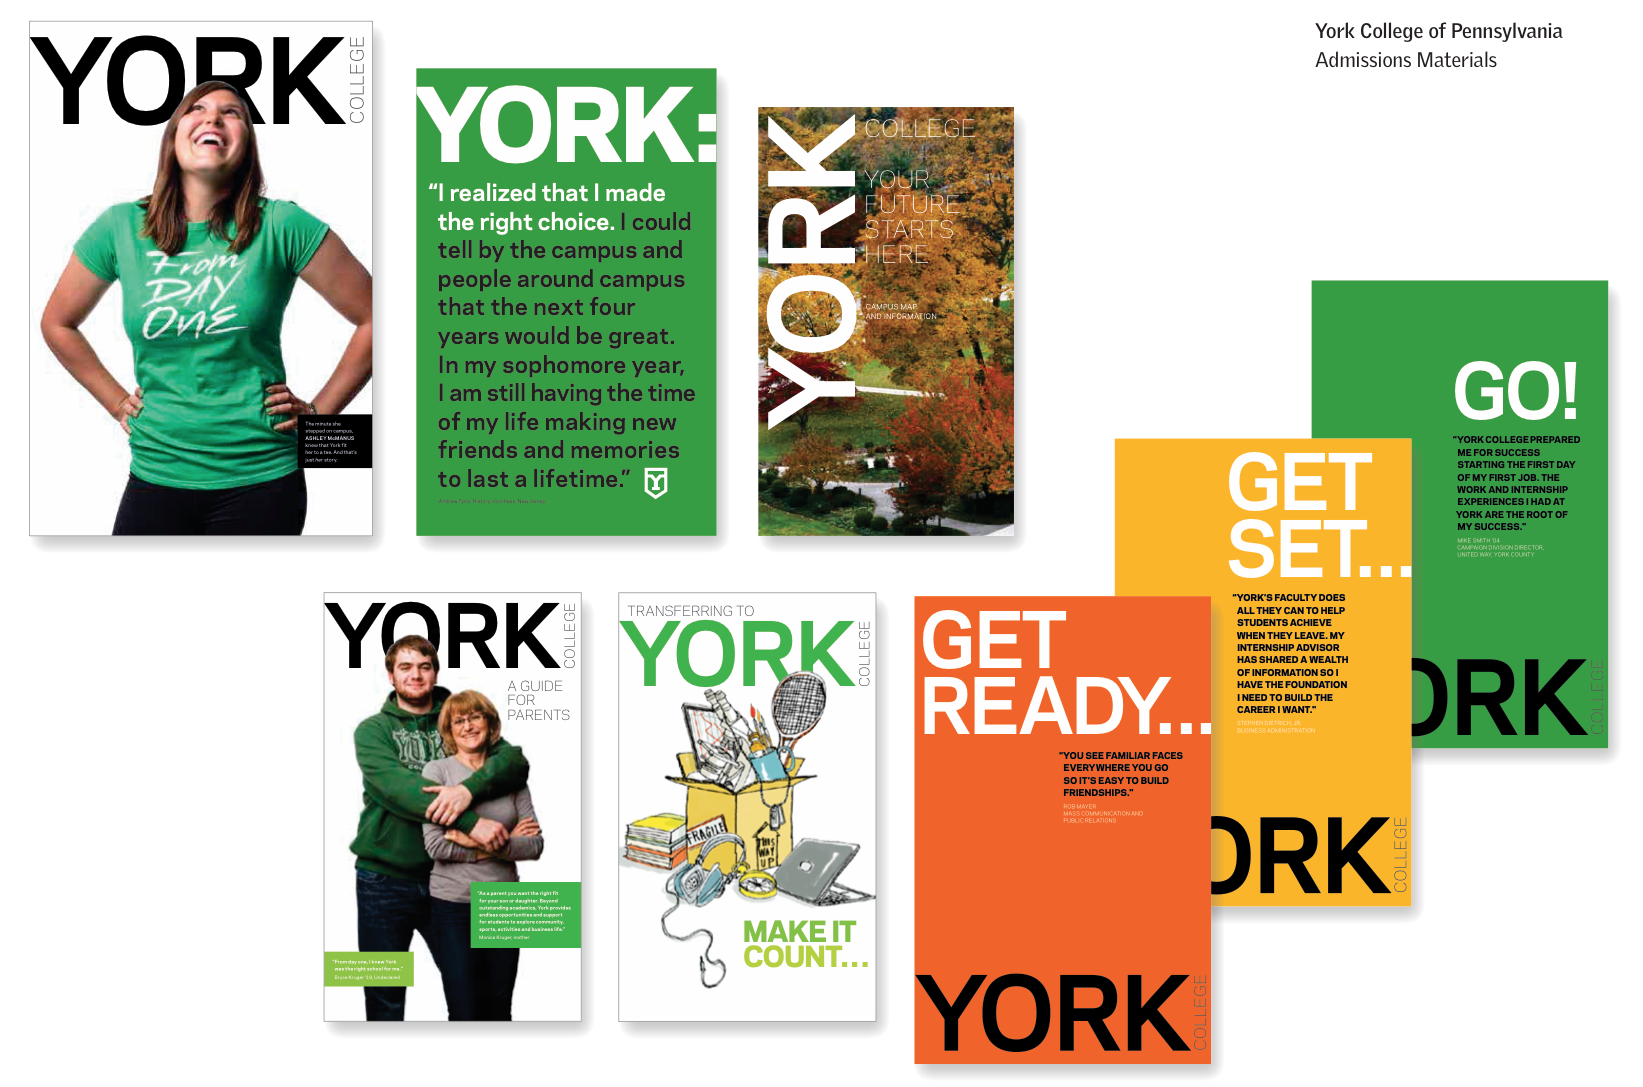 York College branded admissions campaign